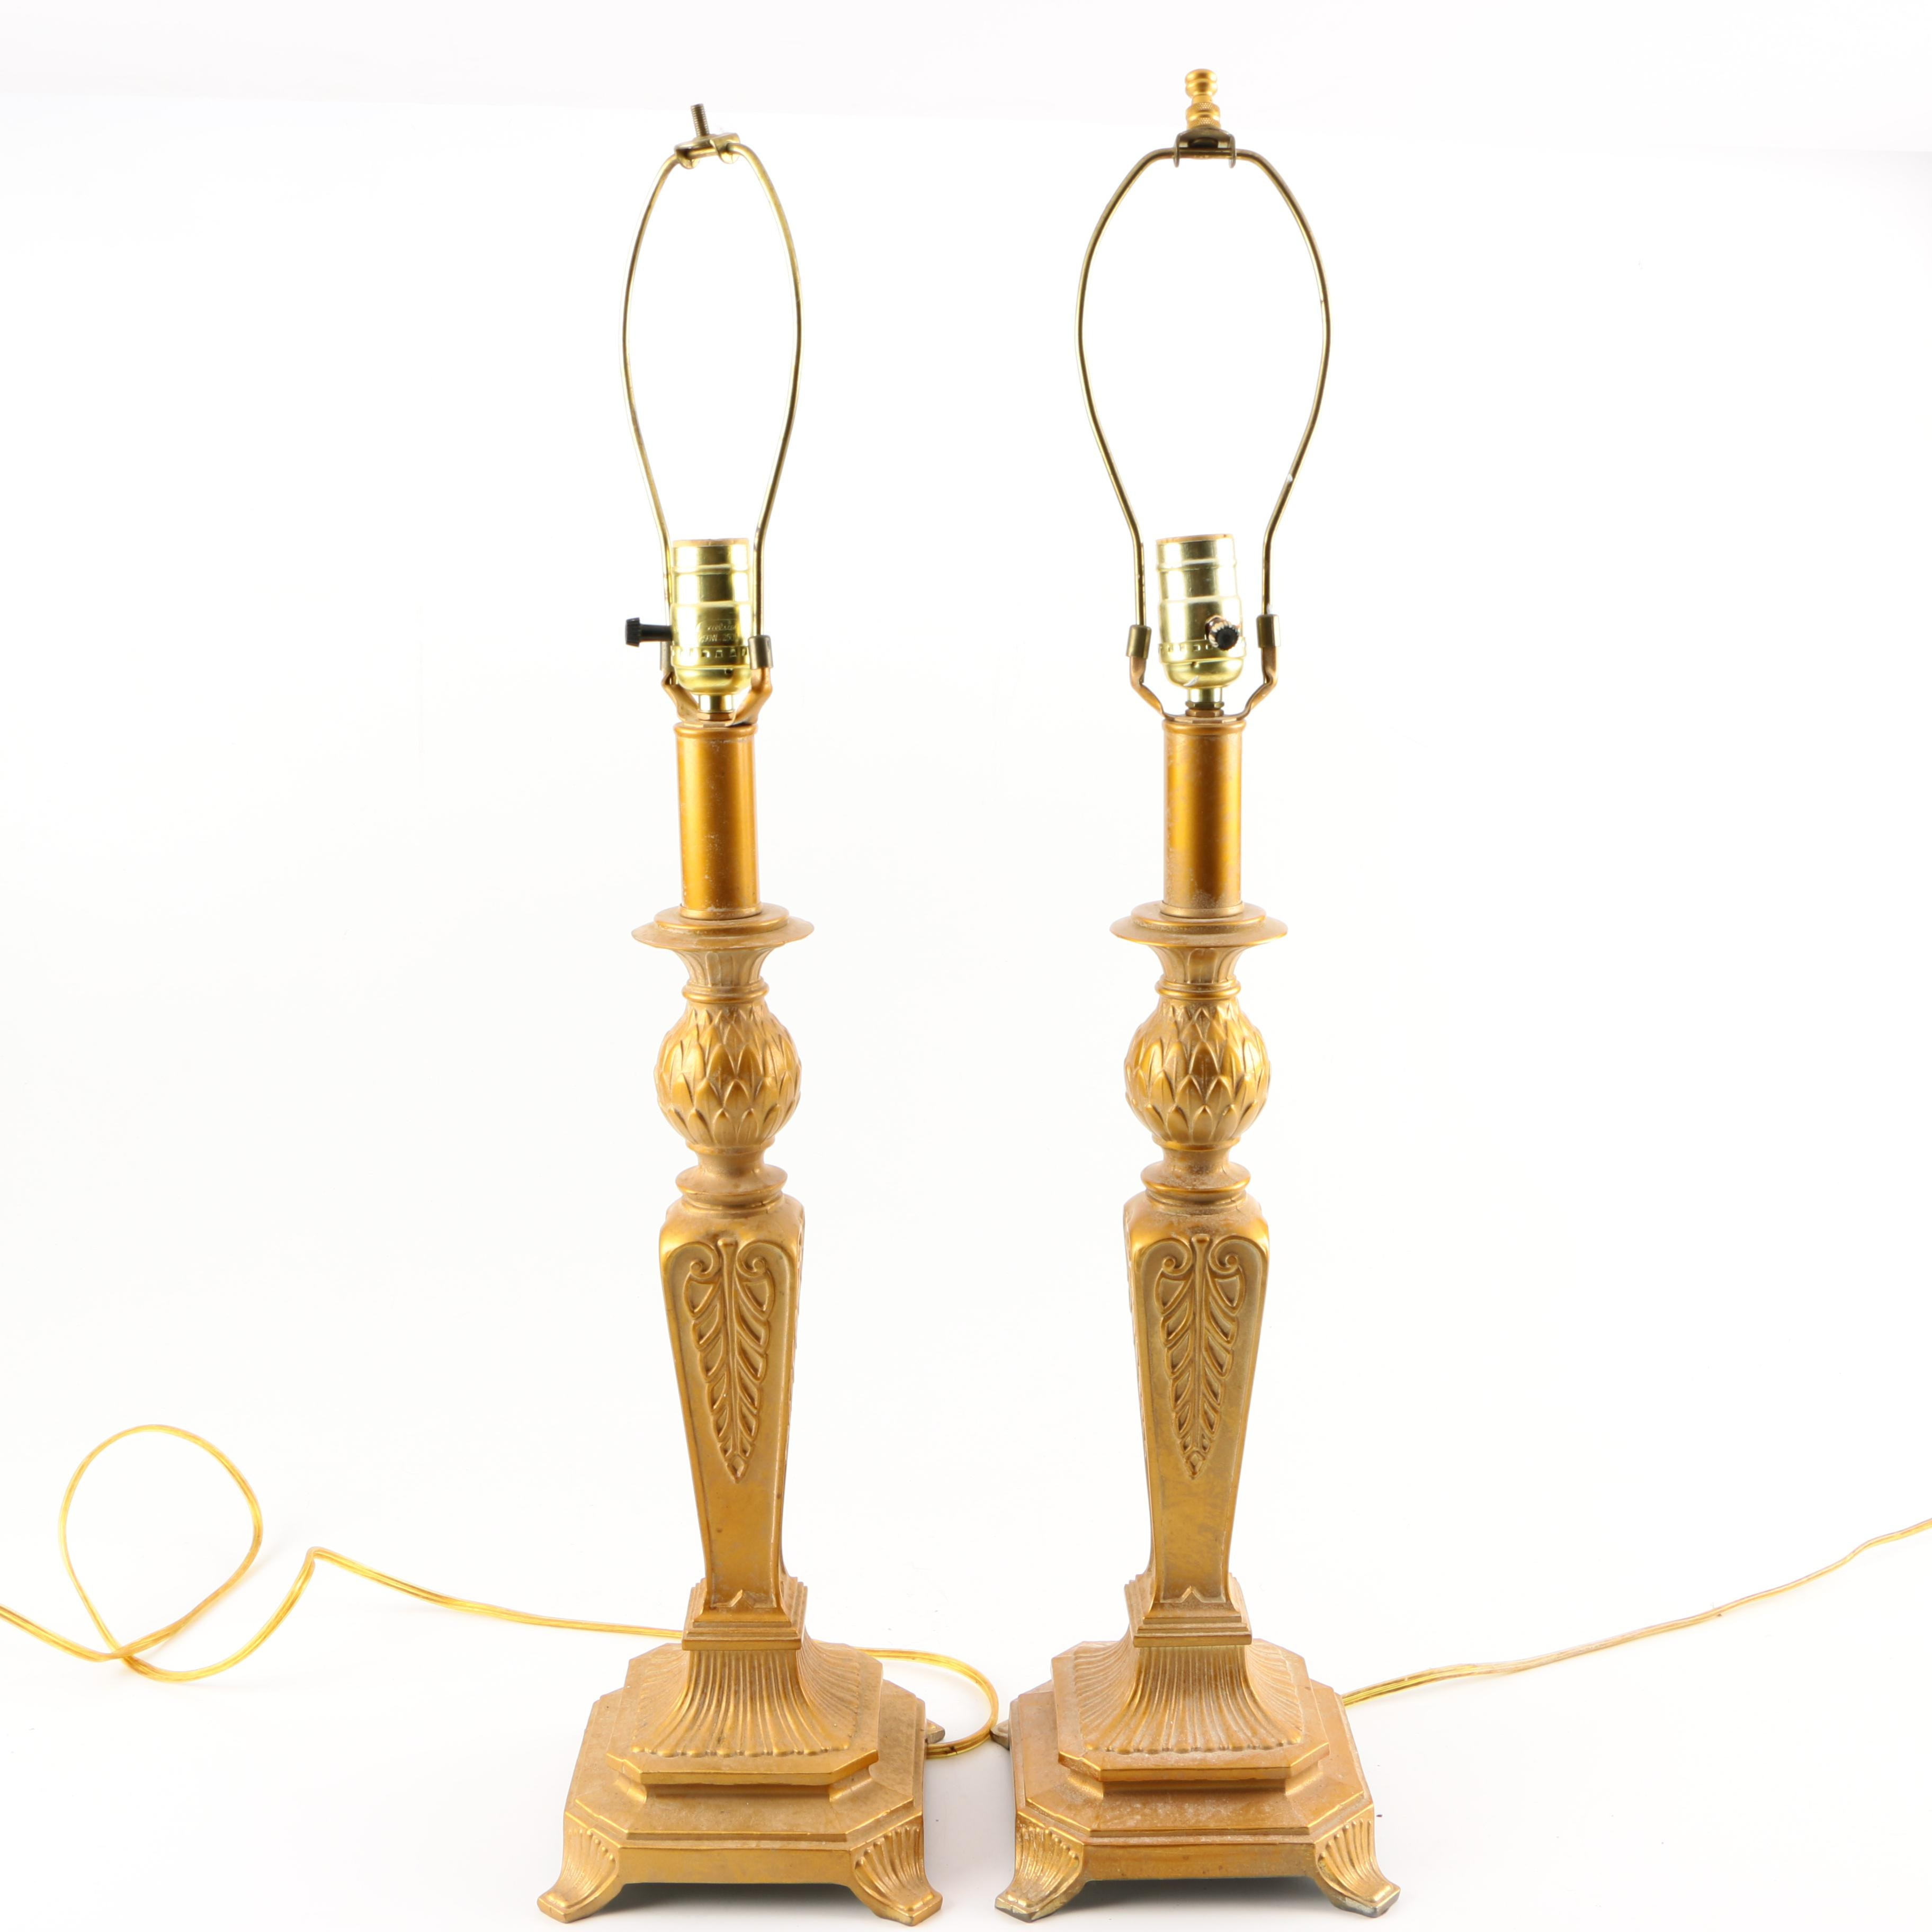 Gold Tone Metal Table Lamps